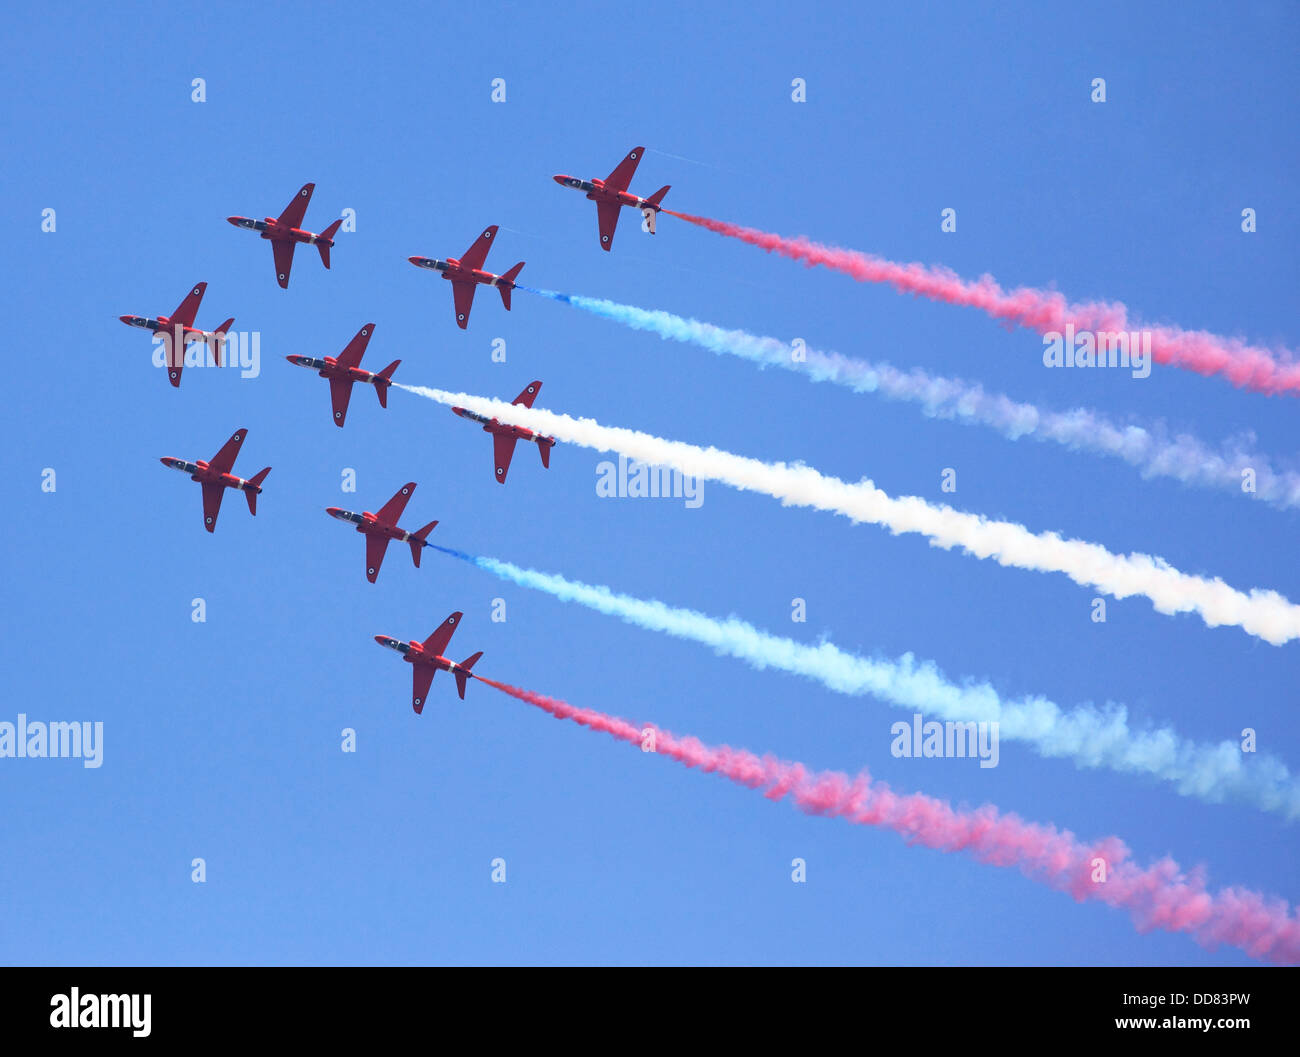 The RAF Red Arrows Aerial Display Team at Cosford Airshow 2013 Shropshire, England, Europe - Stock Image